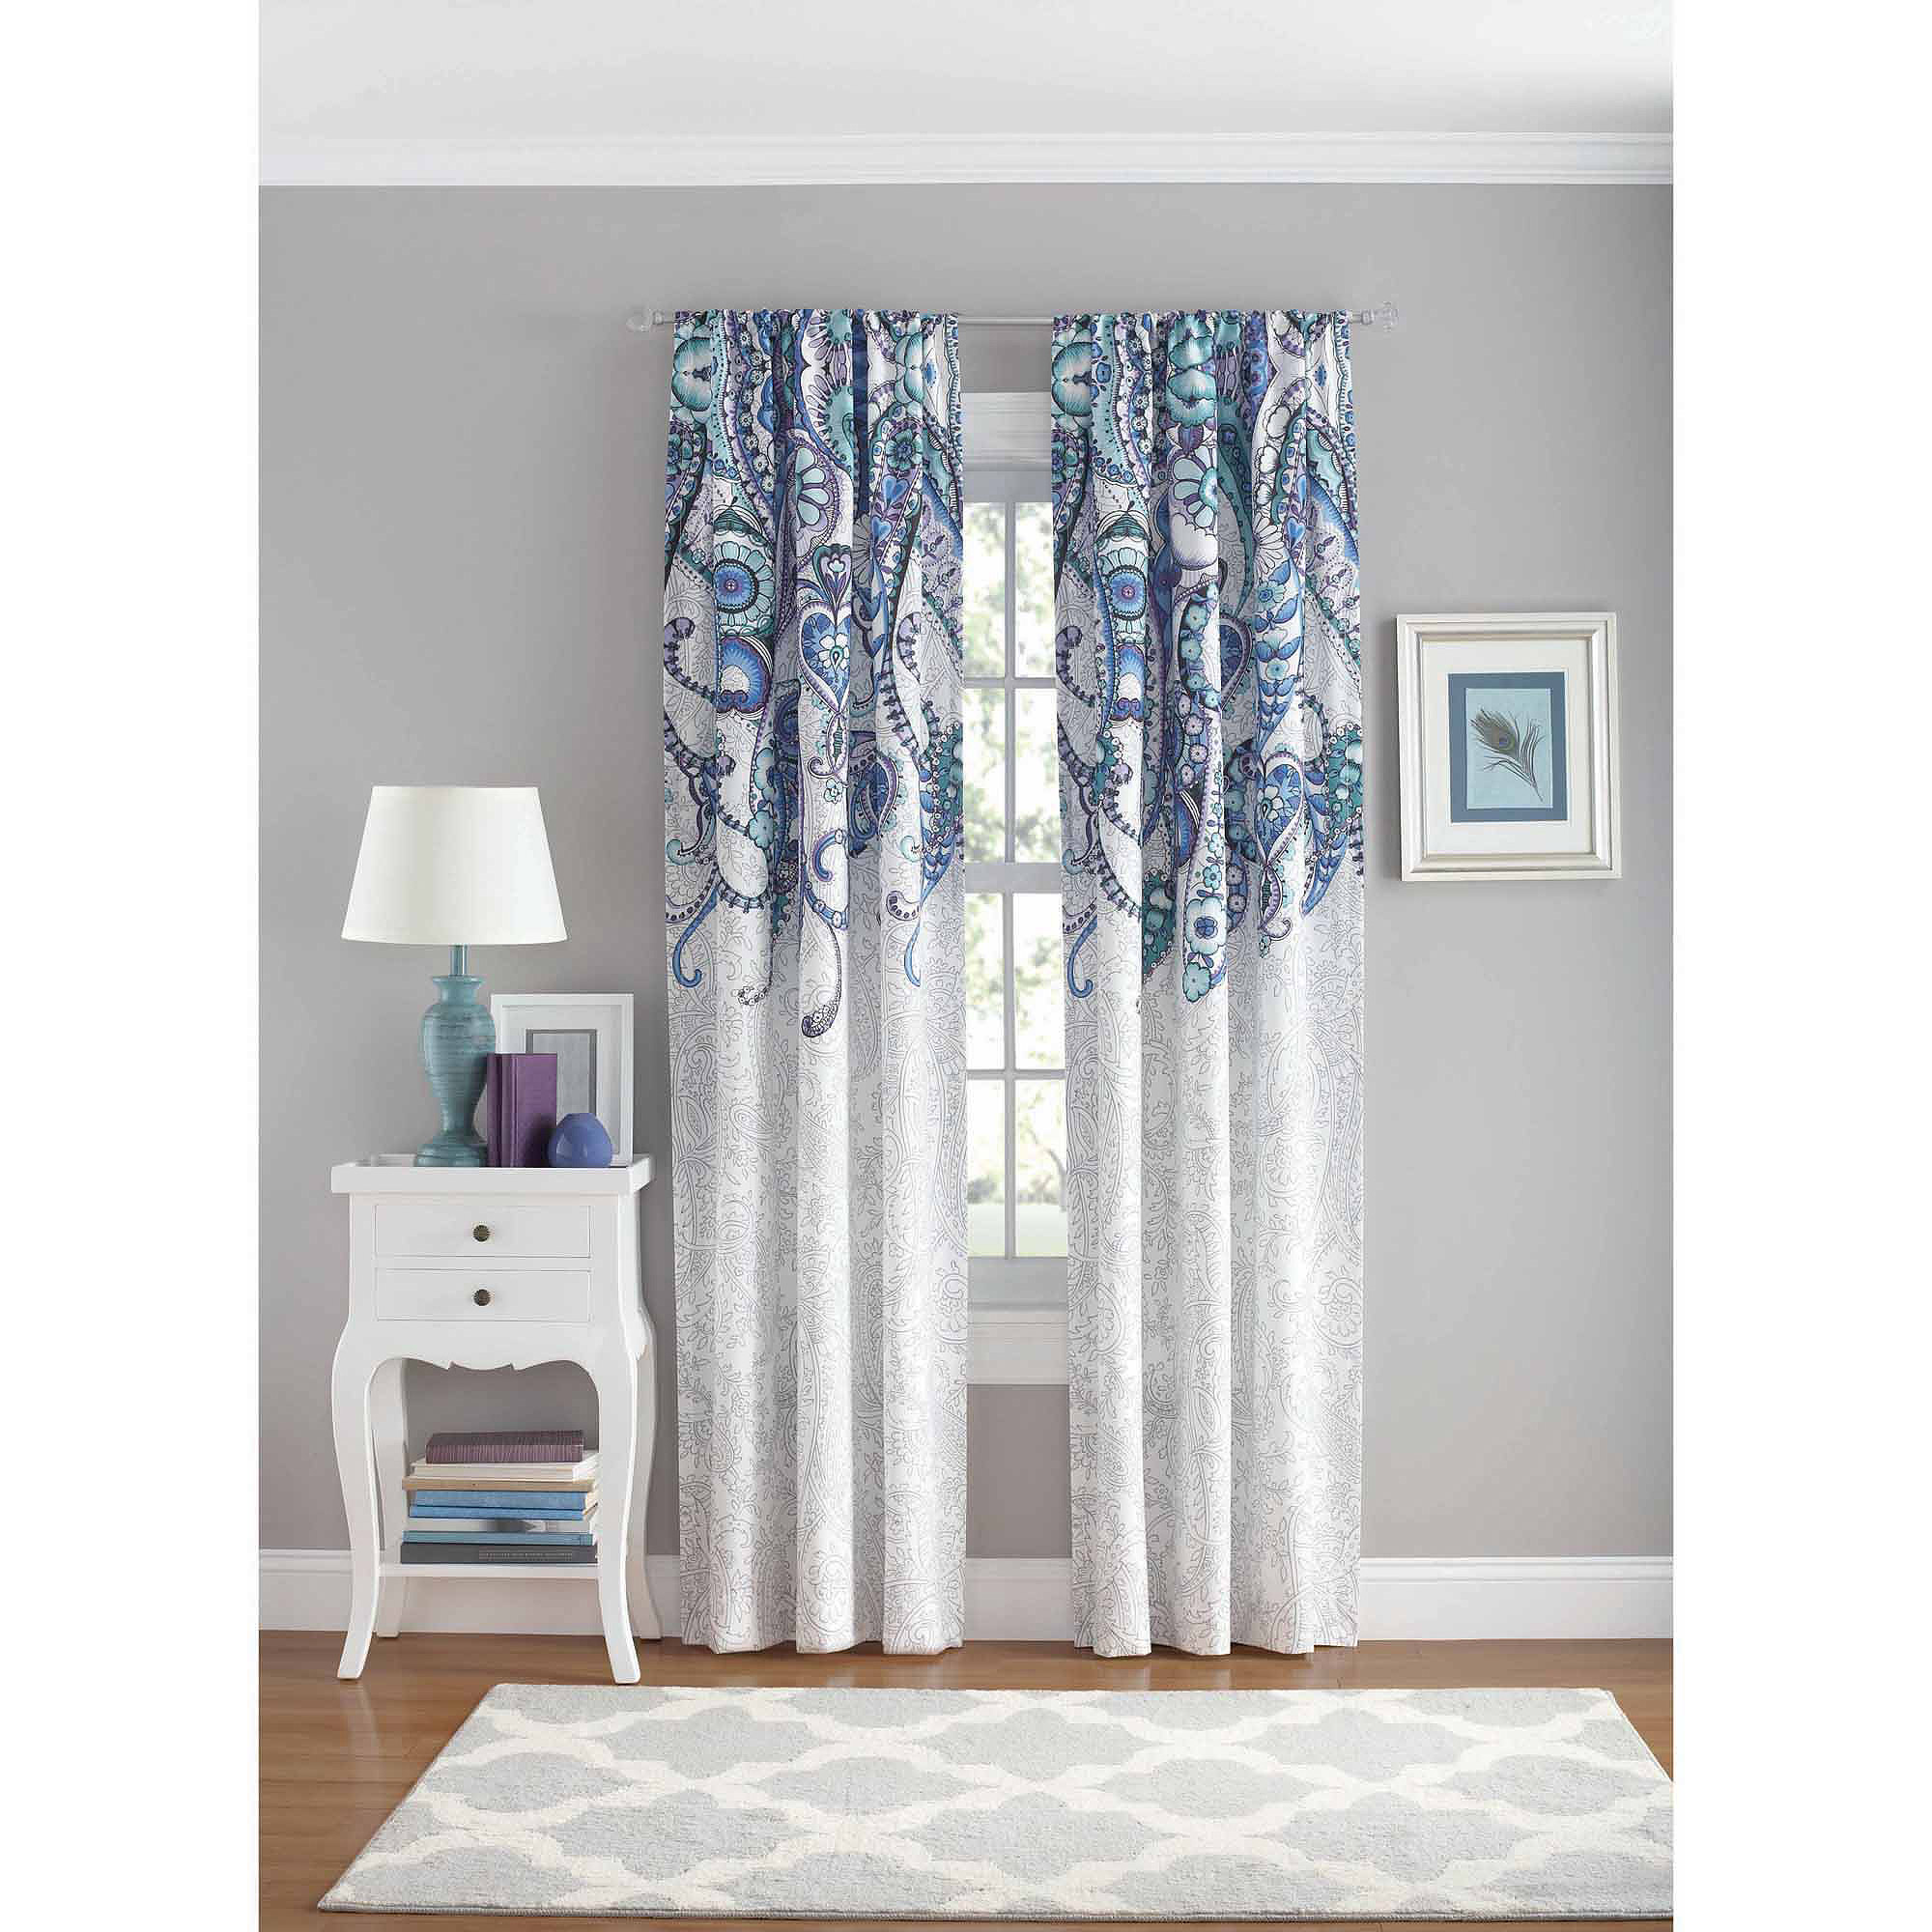 Walmart Curtains For Living Room Pleasing Your Zone Paisley Bedroom Curtain Panel  Walmart Design Ideas